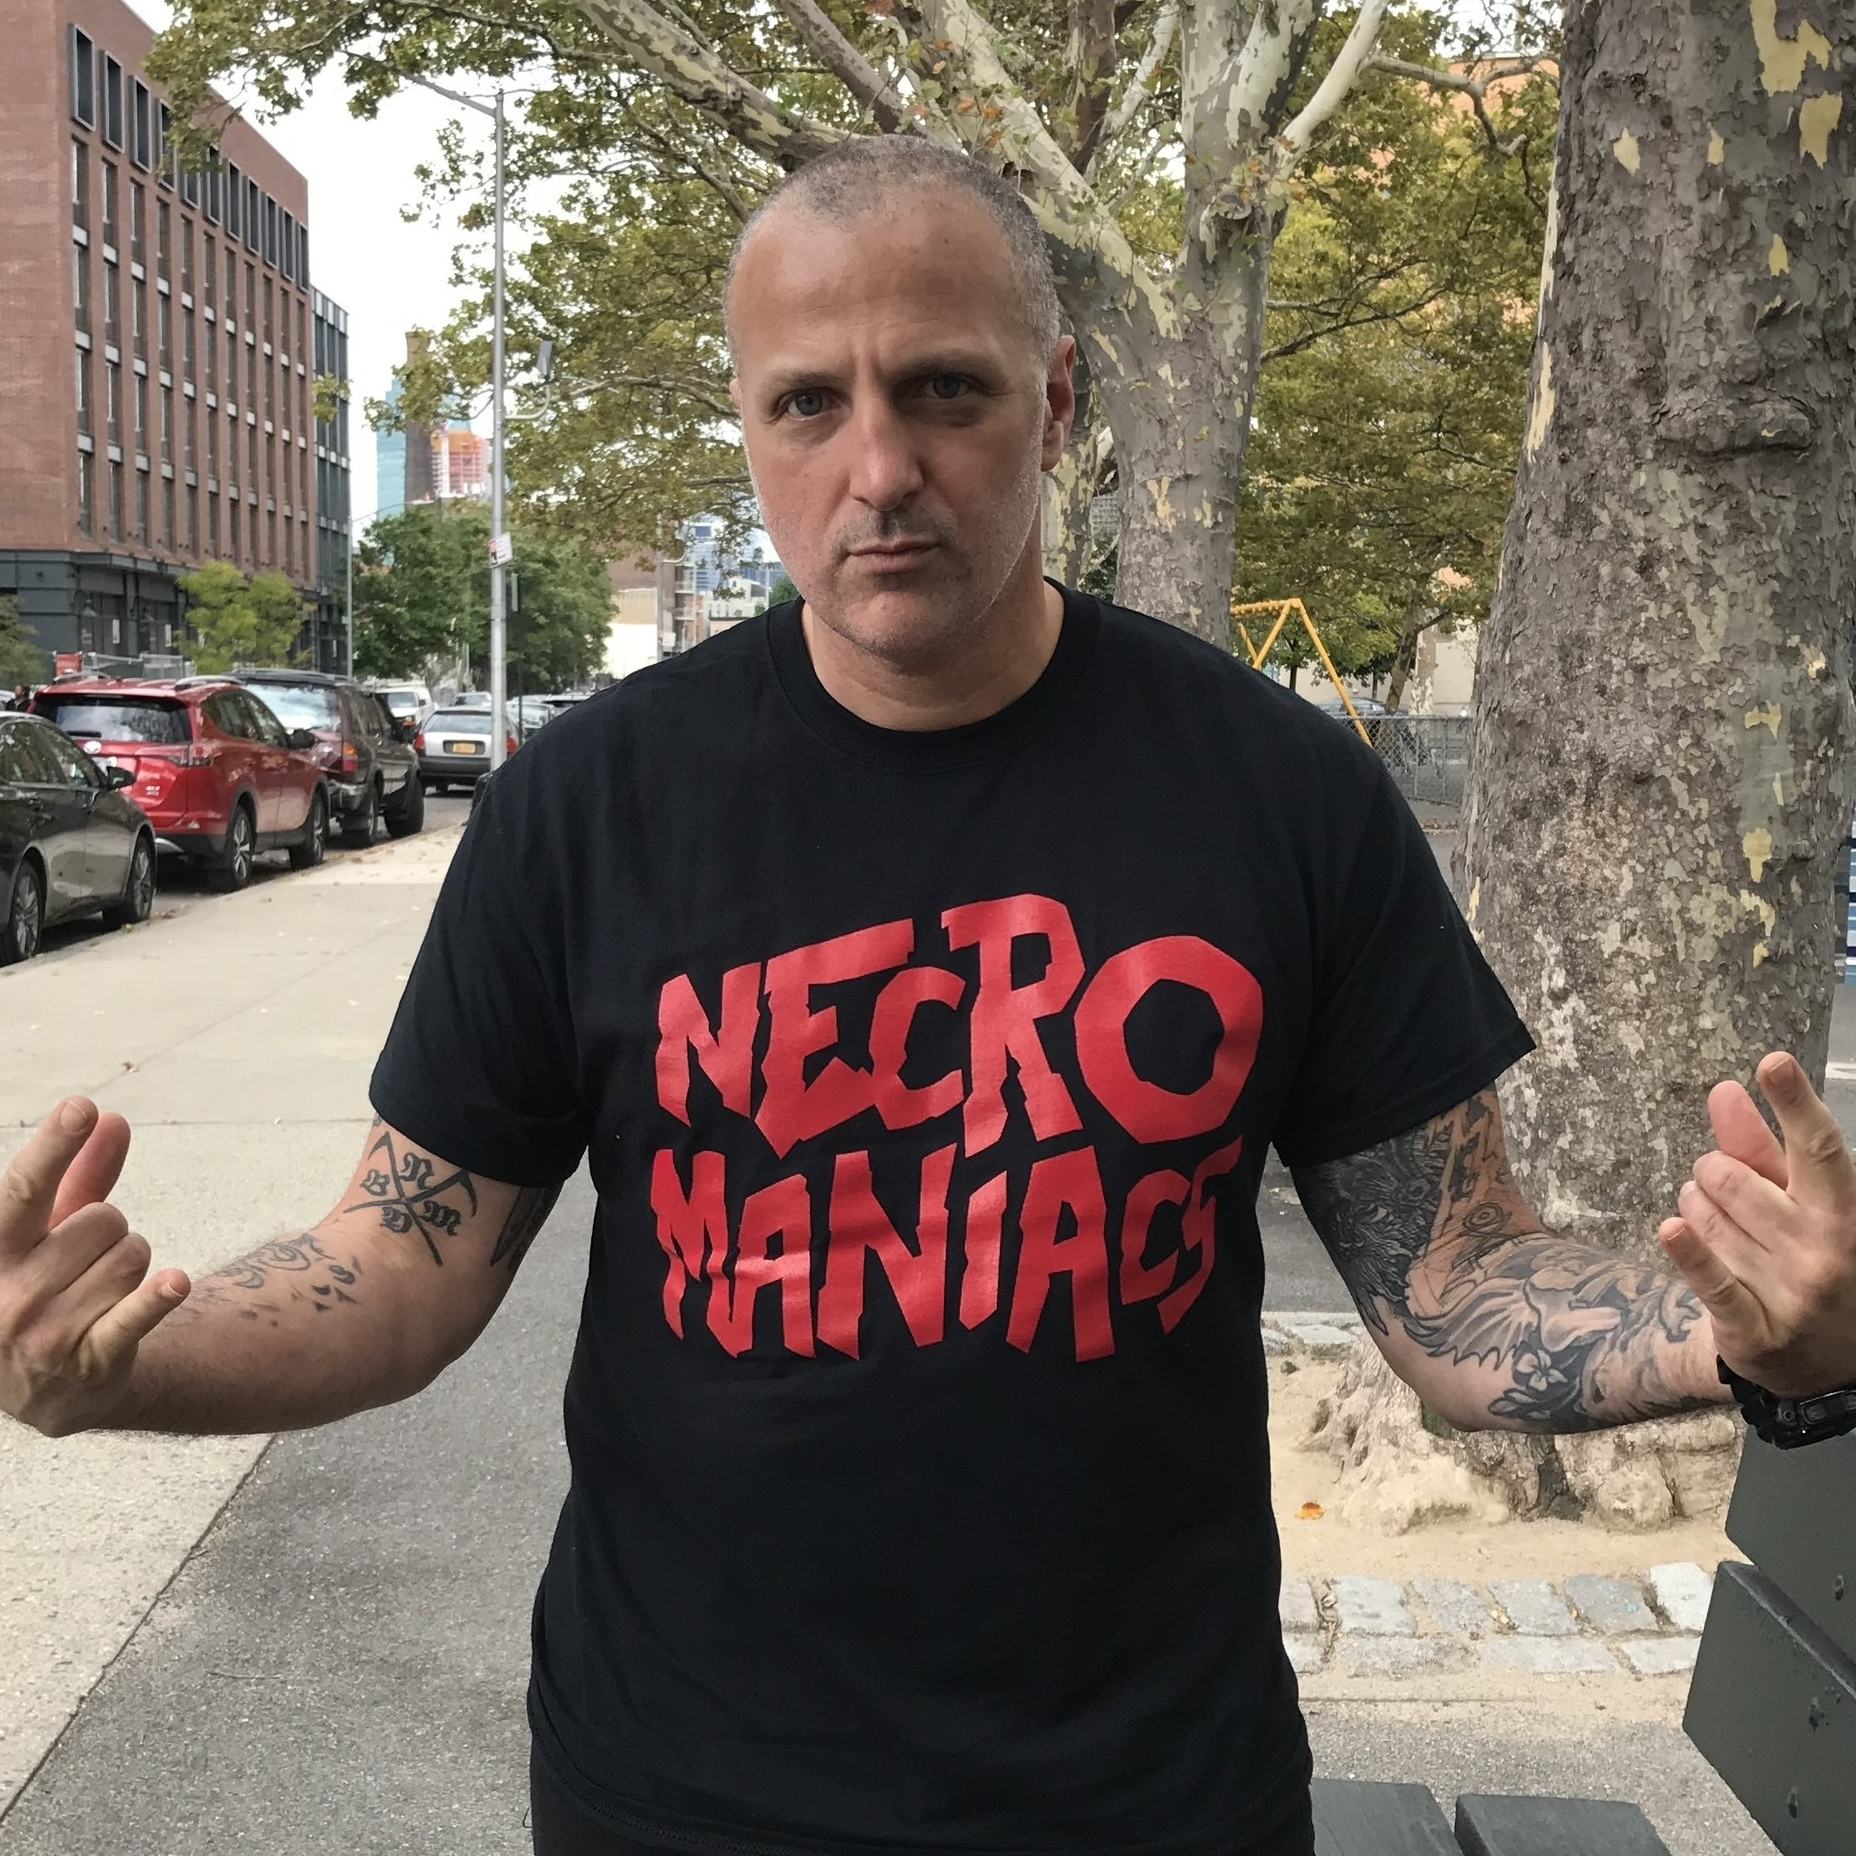 NECROMANIACS SHIRTS ARE IN -